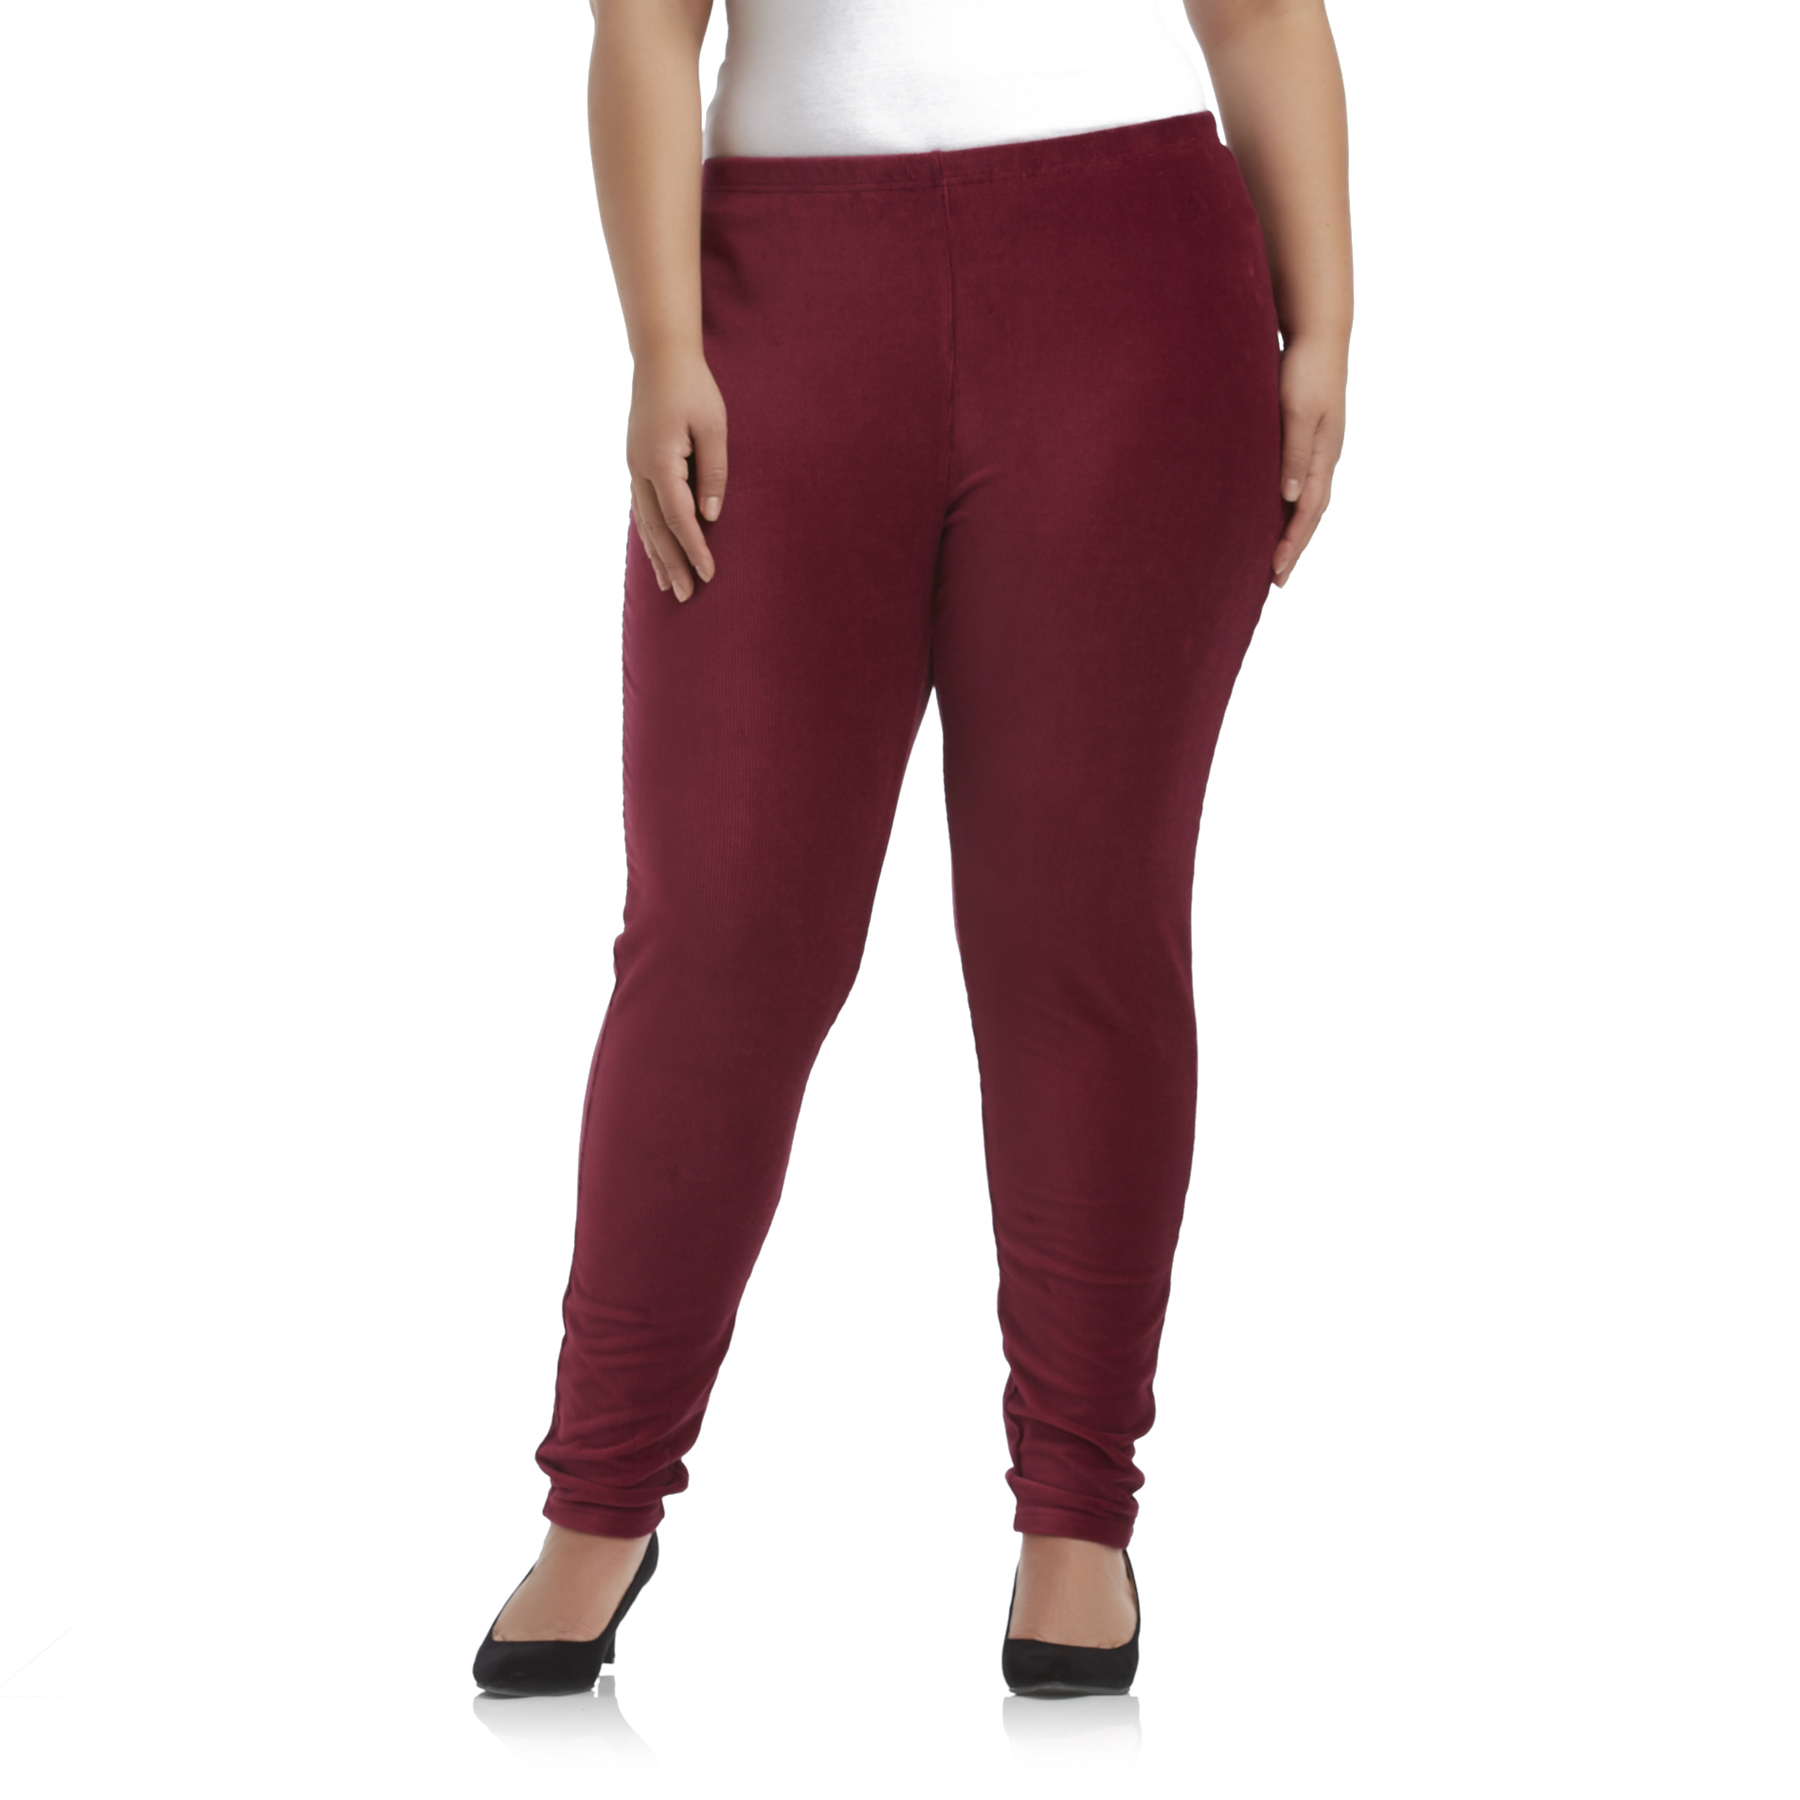 plus size pants kmart photo - 2